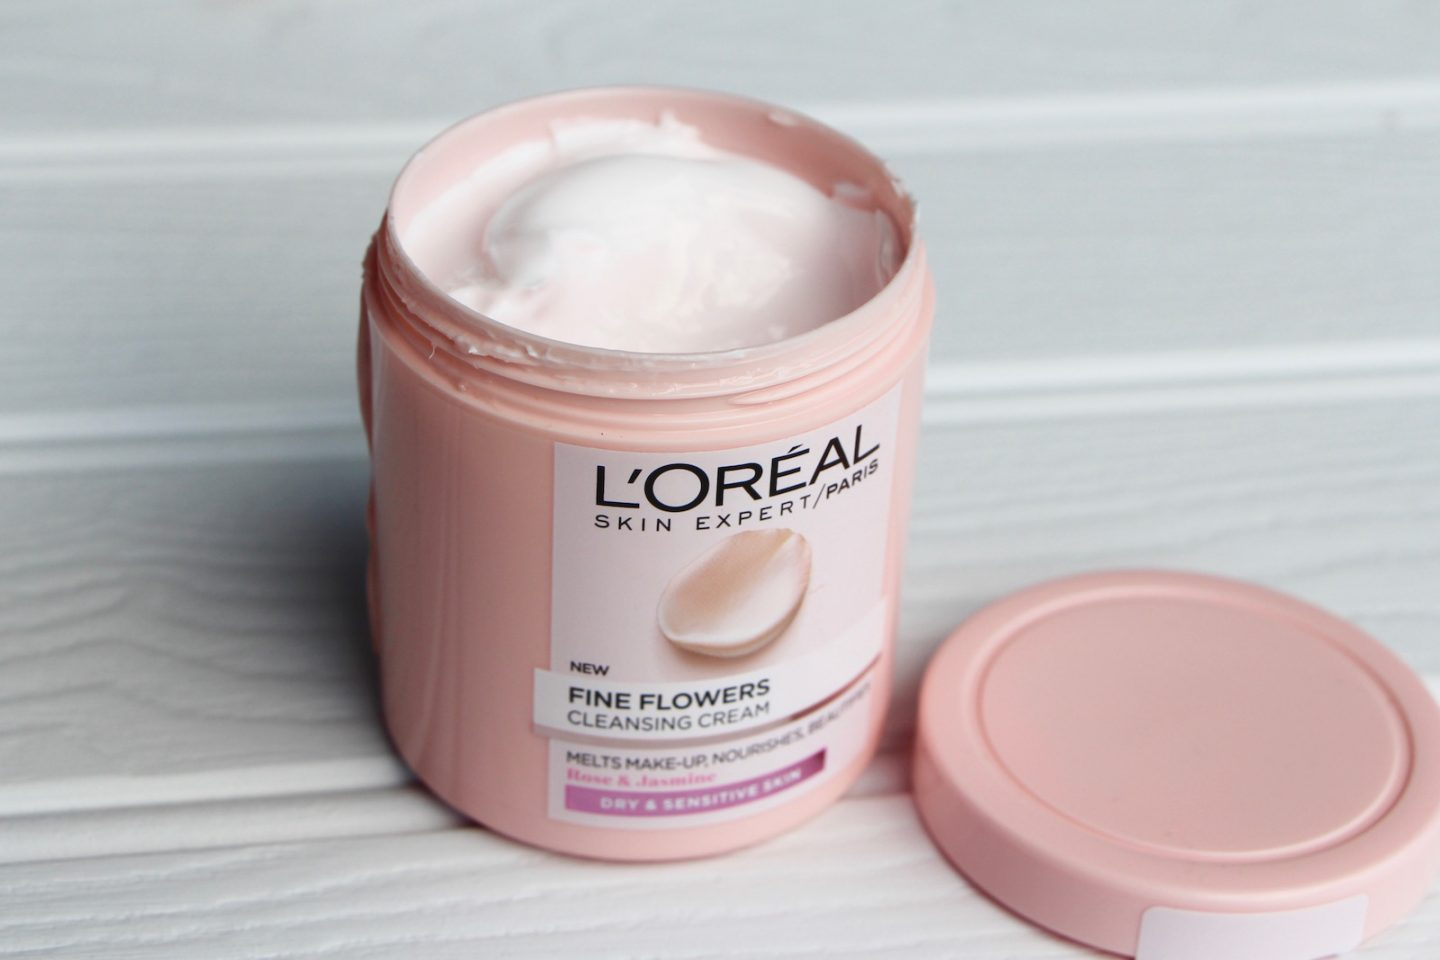 l'oreal fine flowers cleansing cream review